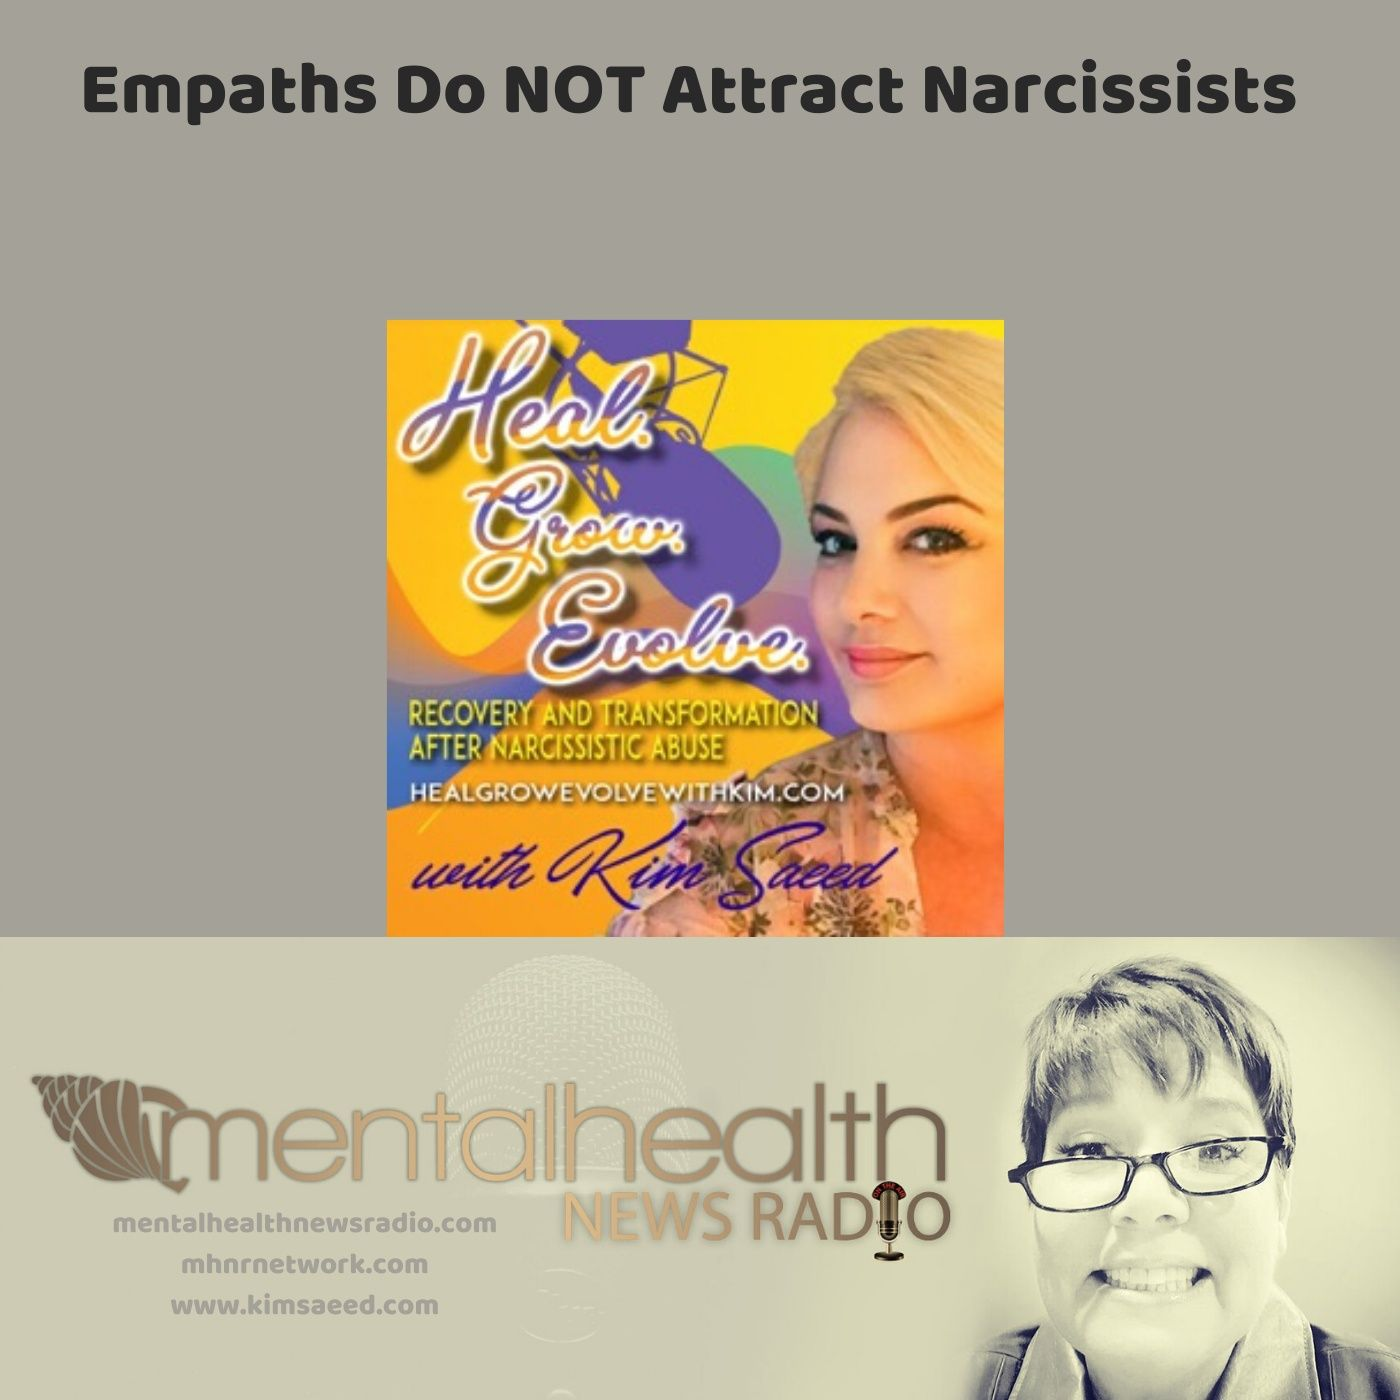 Mental Health News Radio - Empaths Do Not Attract Narcissists